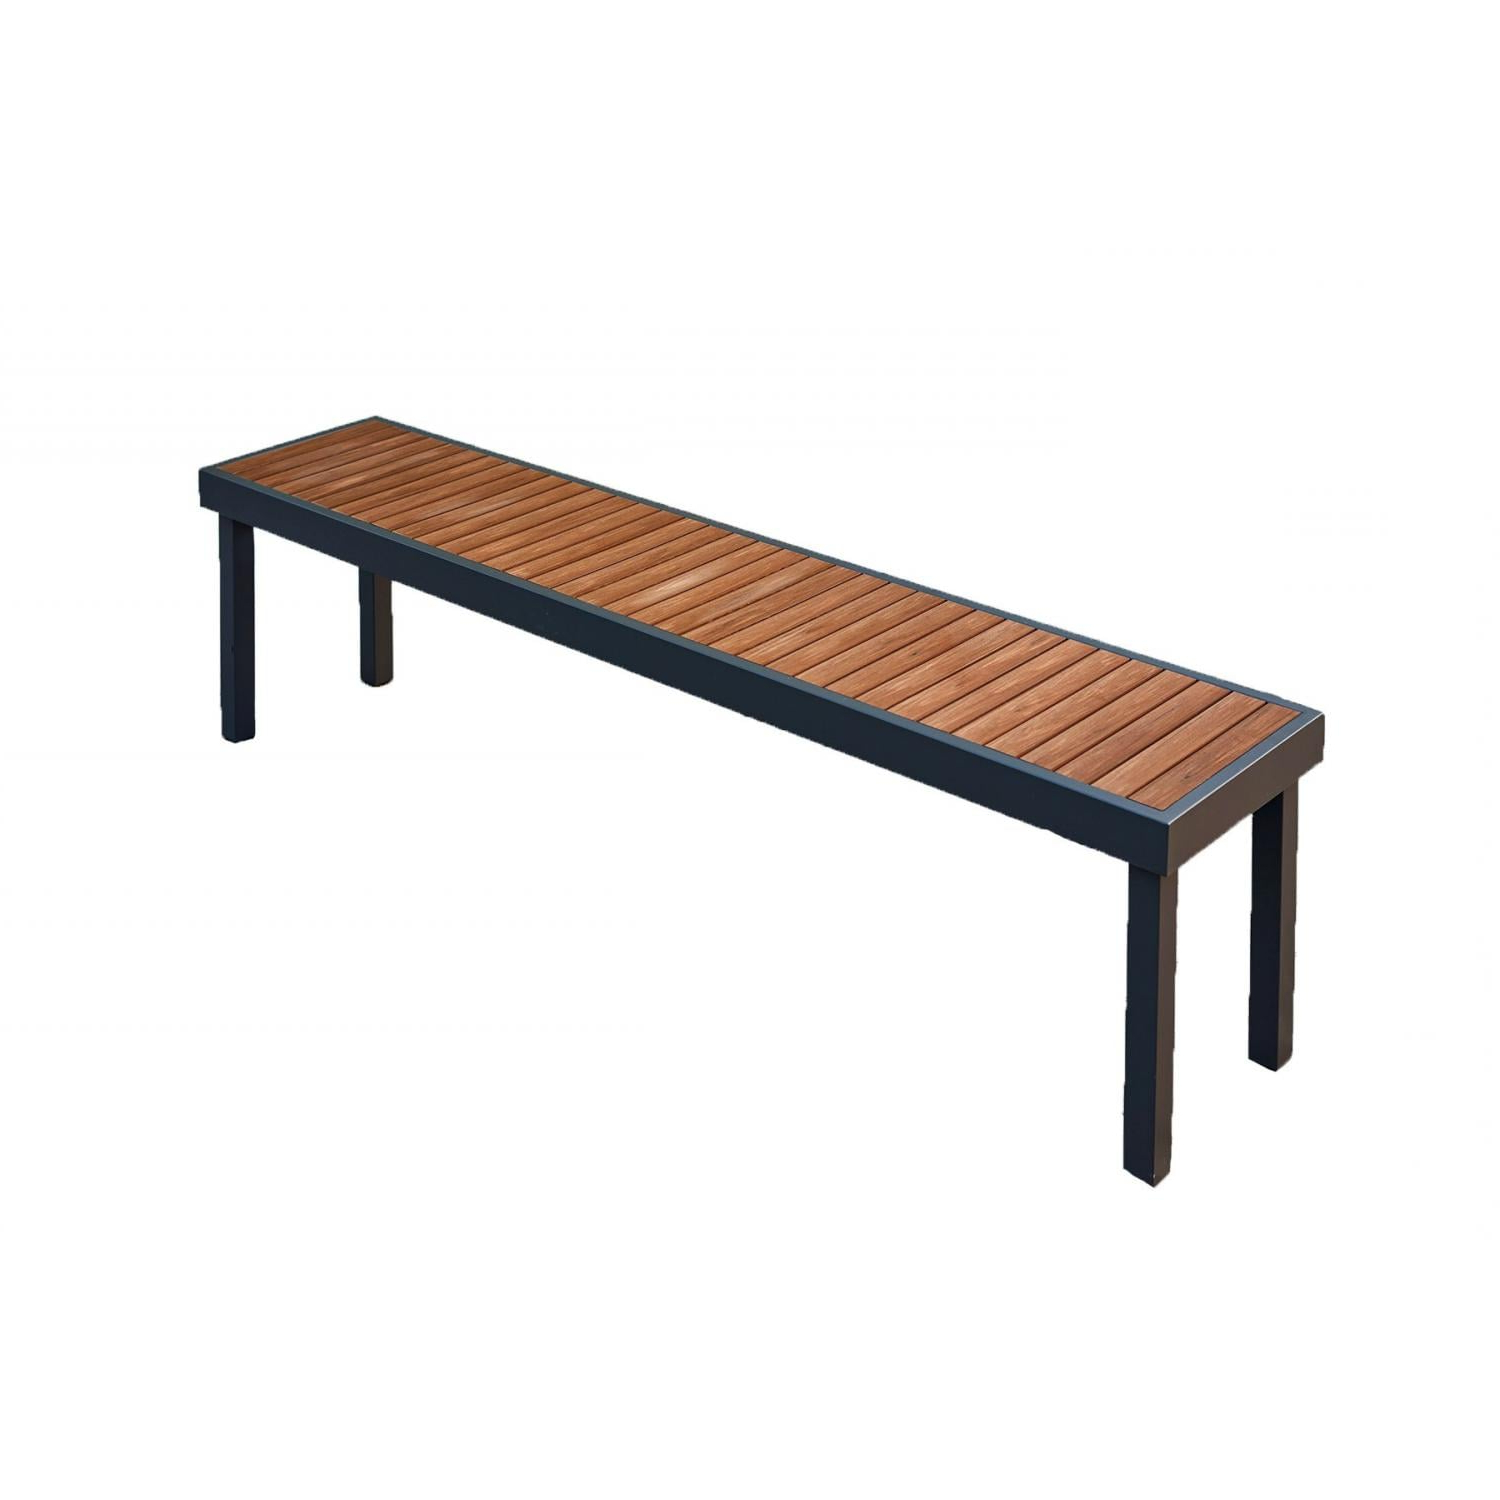 2020 Wallie Teak Garden Benches Regarding The Outdoor Greatroom Company Kenwood Aluminum Teak Picnic Bench Kw Lb (View 17 of 30)